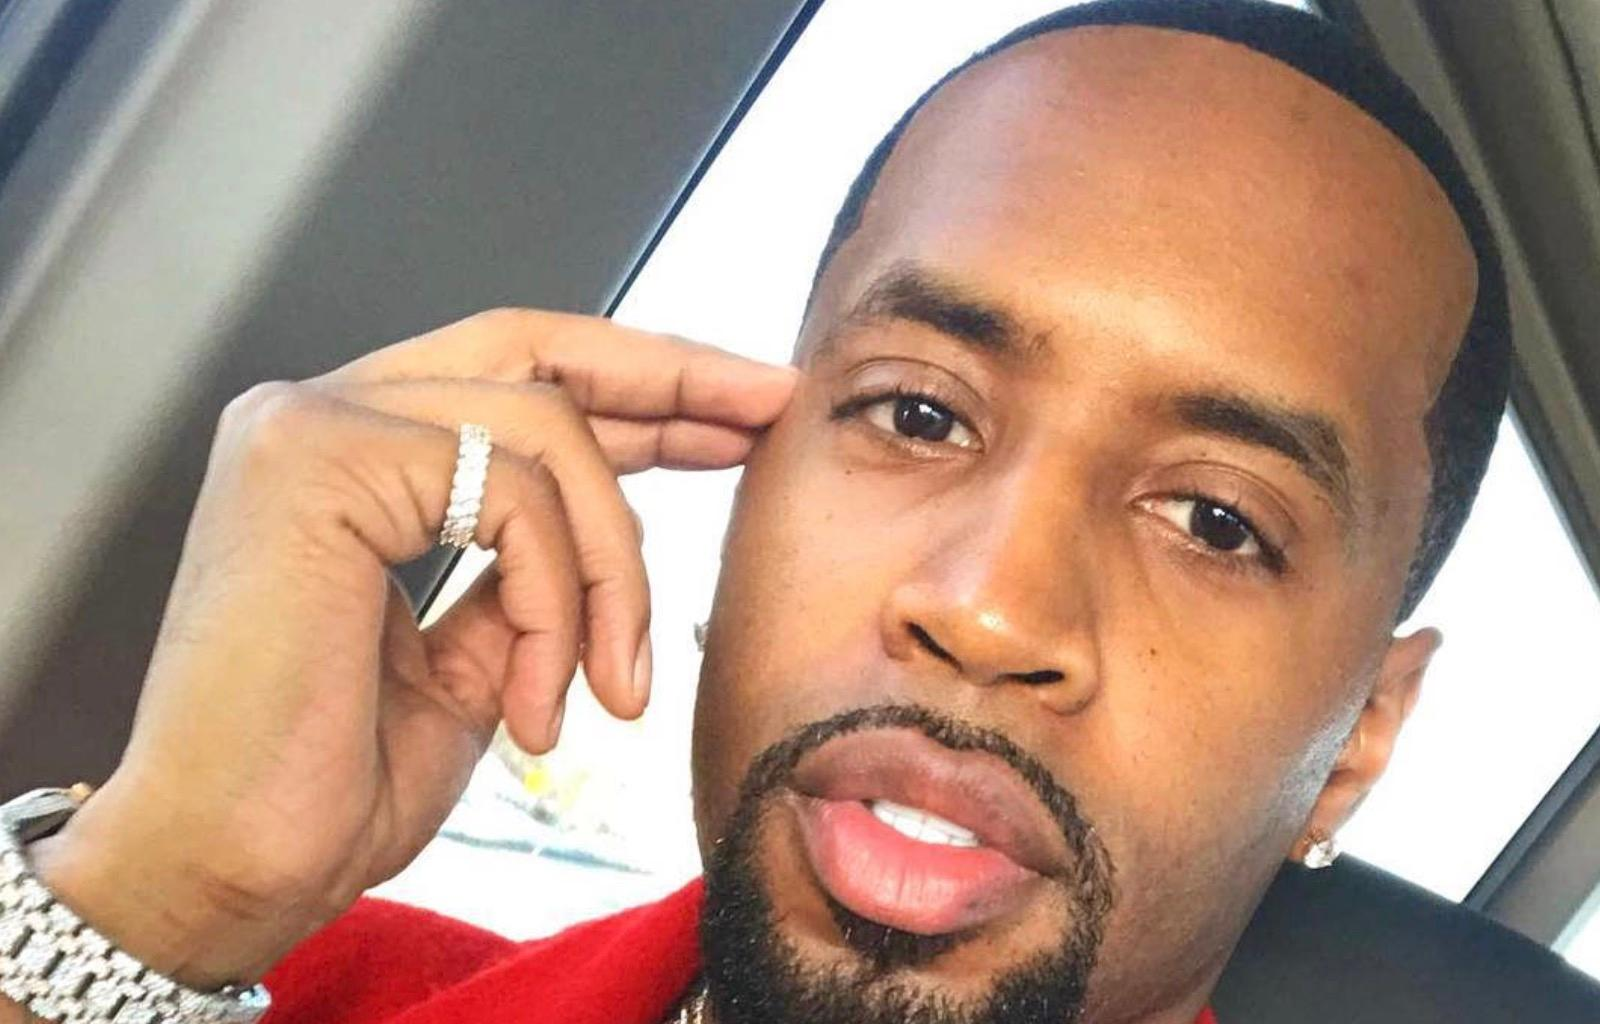 Safaree Makes Fans Laugh With This Video